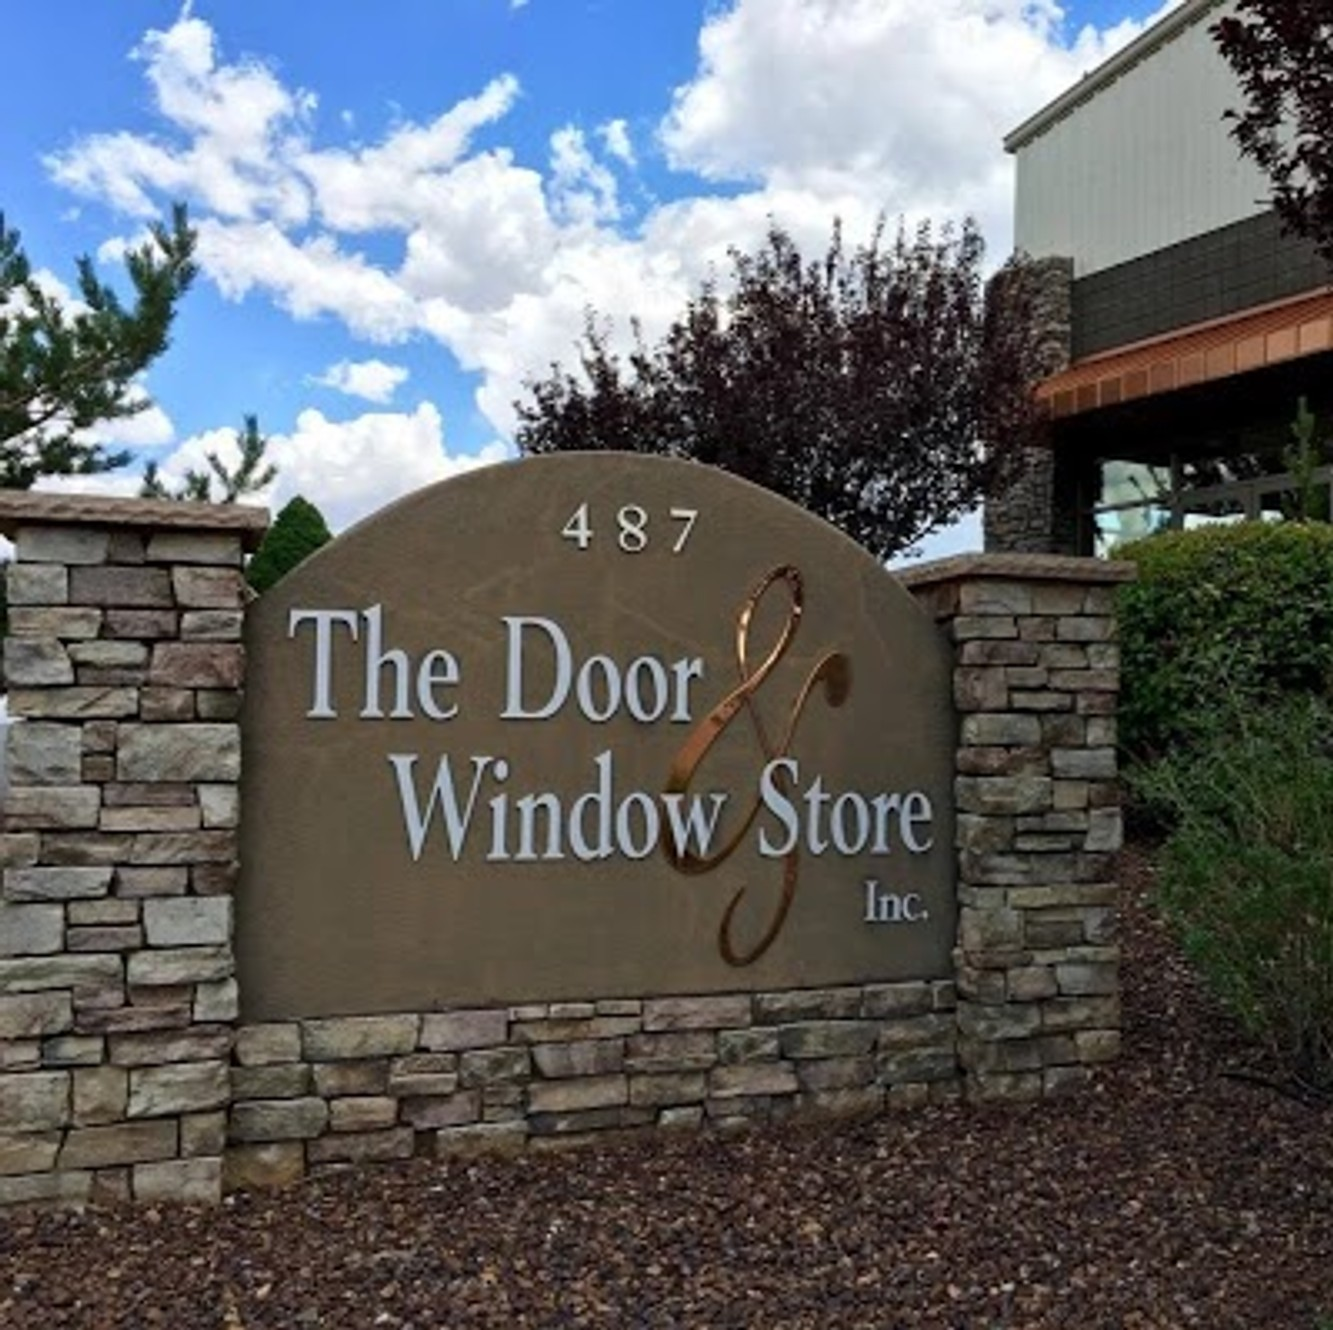 Door And Window Store The logo